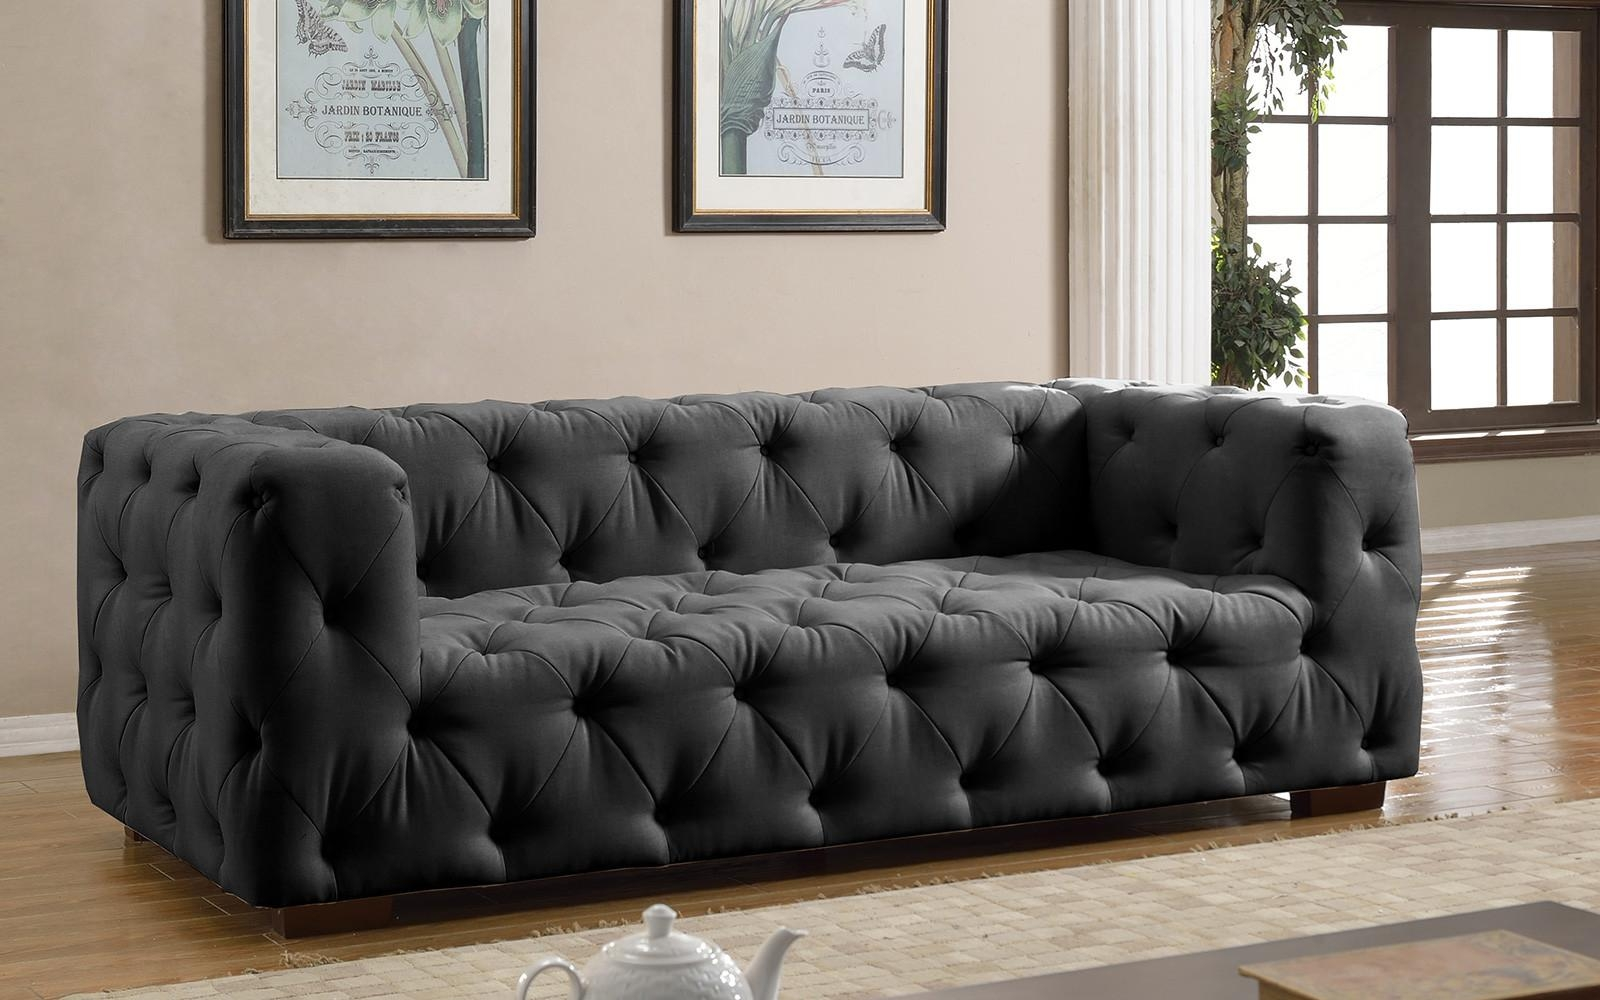 Affordable Sofas | Tehranmix Decoration Inside Affordable Tufted Sofas (Image 4 of 20)